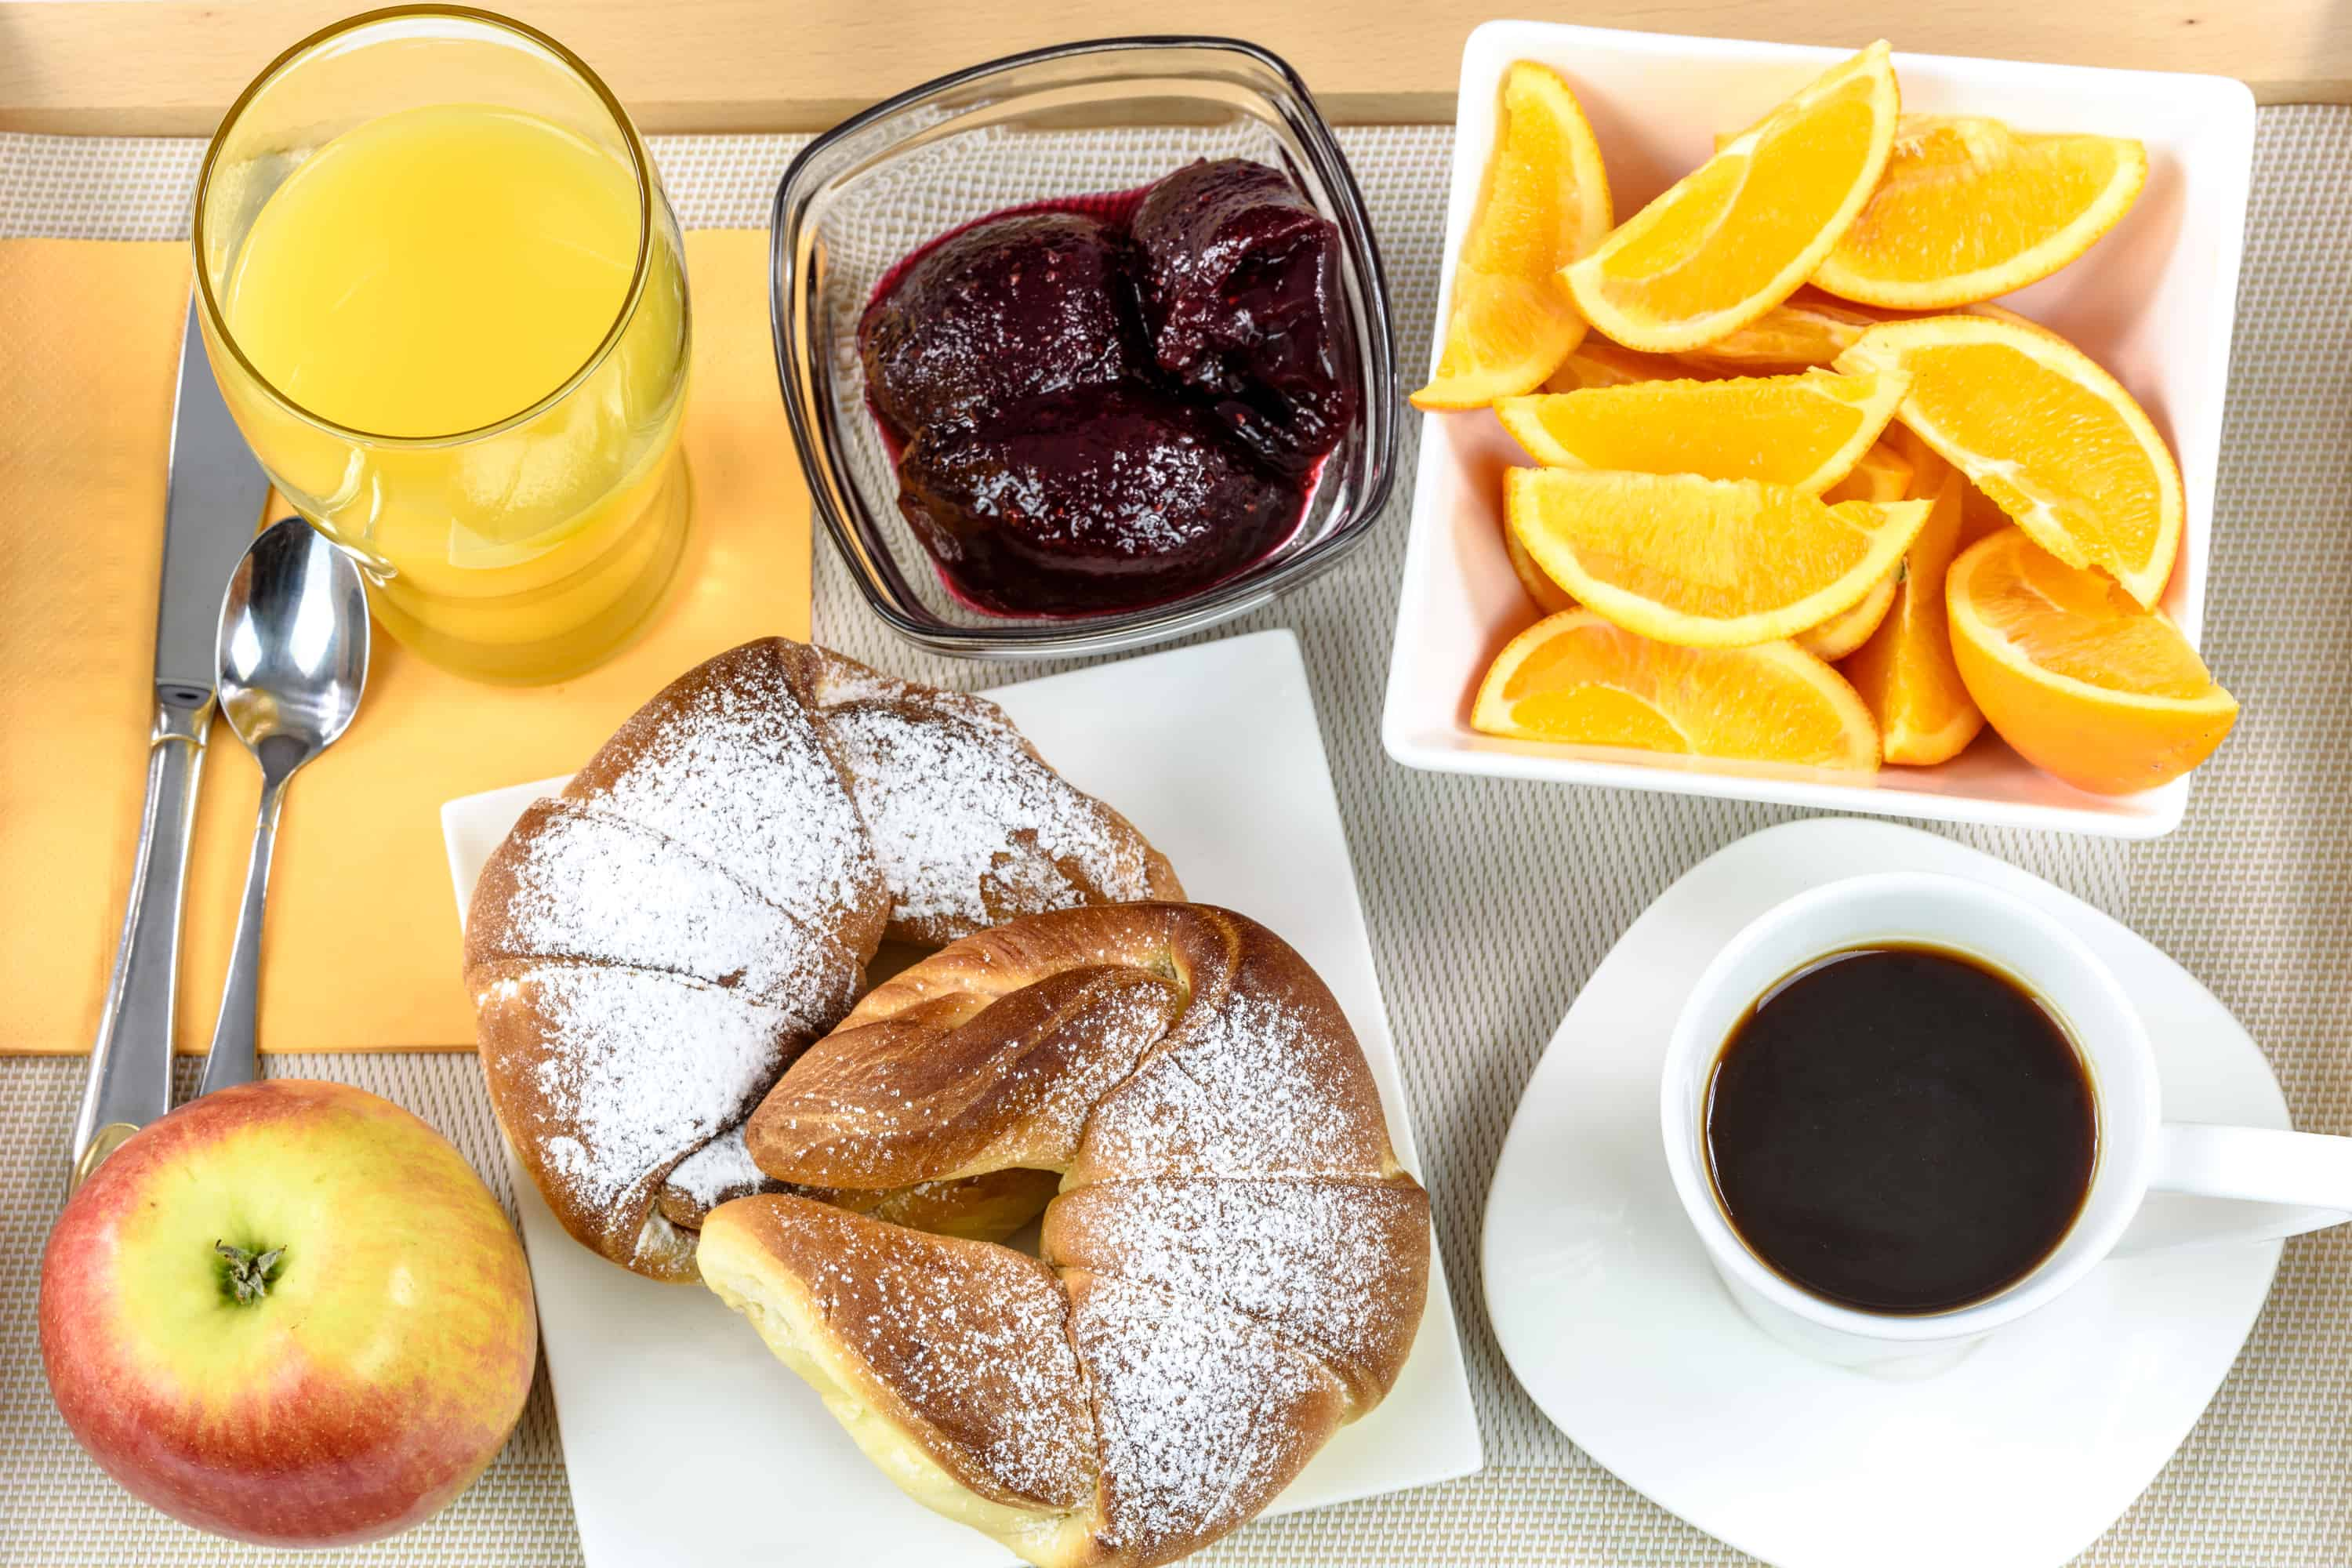 Overhead shot on hotel's breakfast tray with croissants, coffee, oranges, juice, jam, apple and cutlery